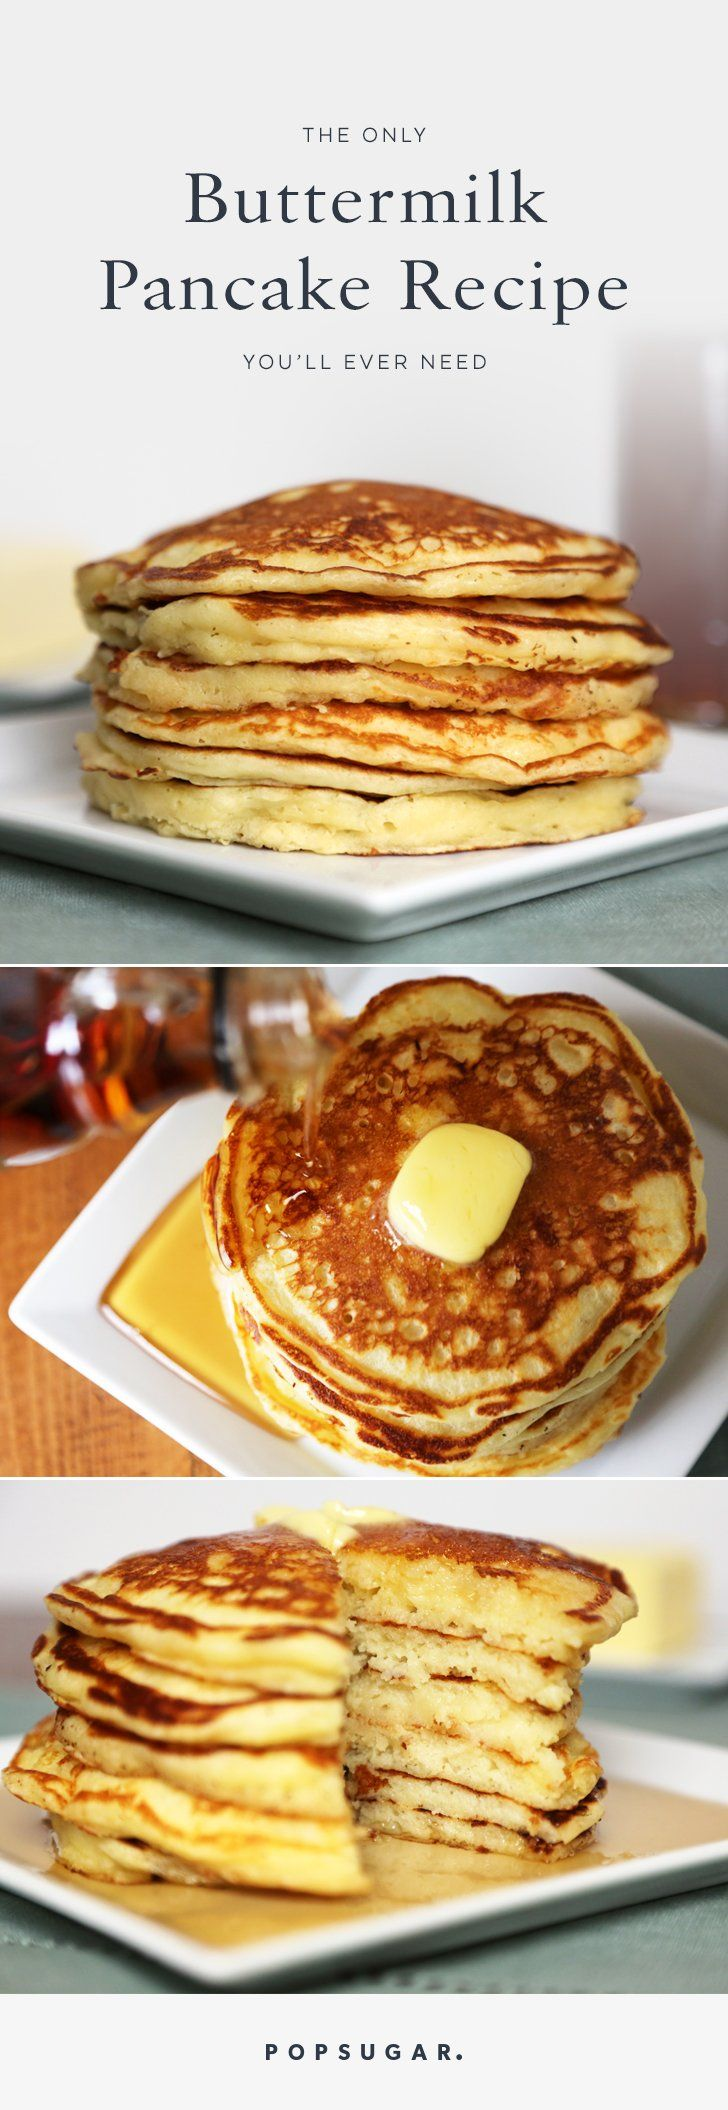 While many resort to pancake mix when making a special weekend breakfast, homemade pancakes are a must.